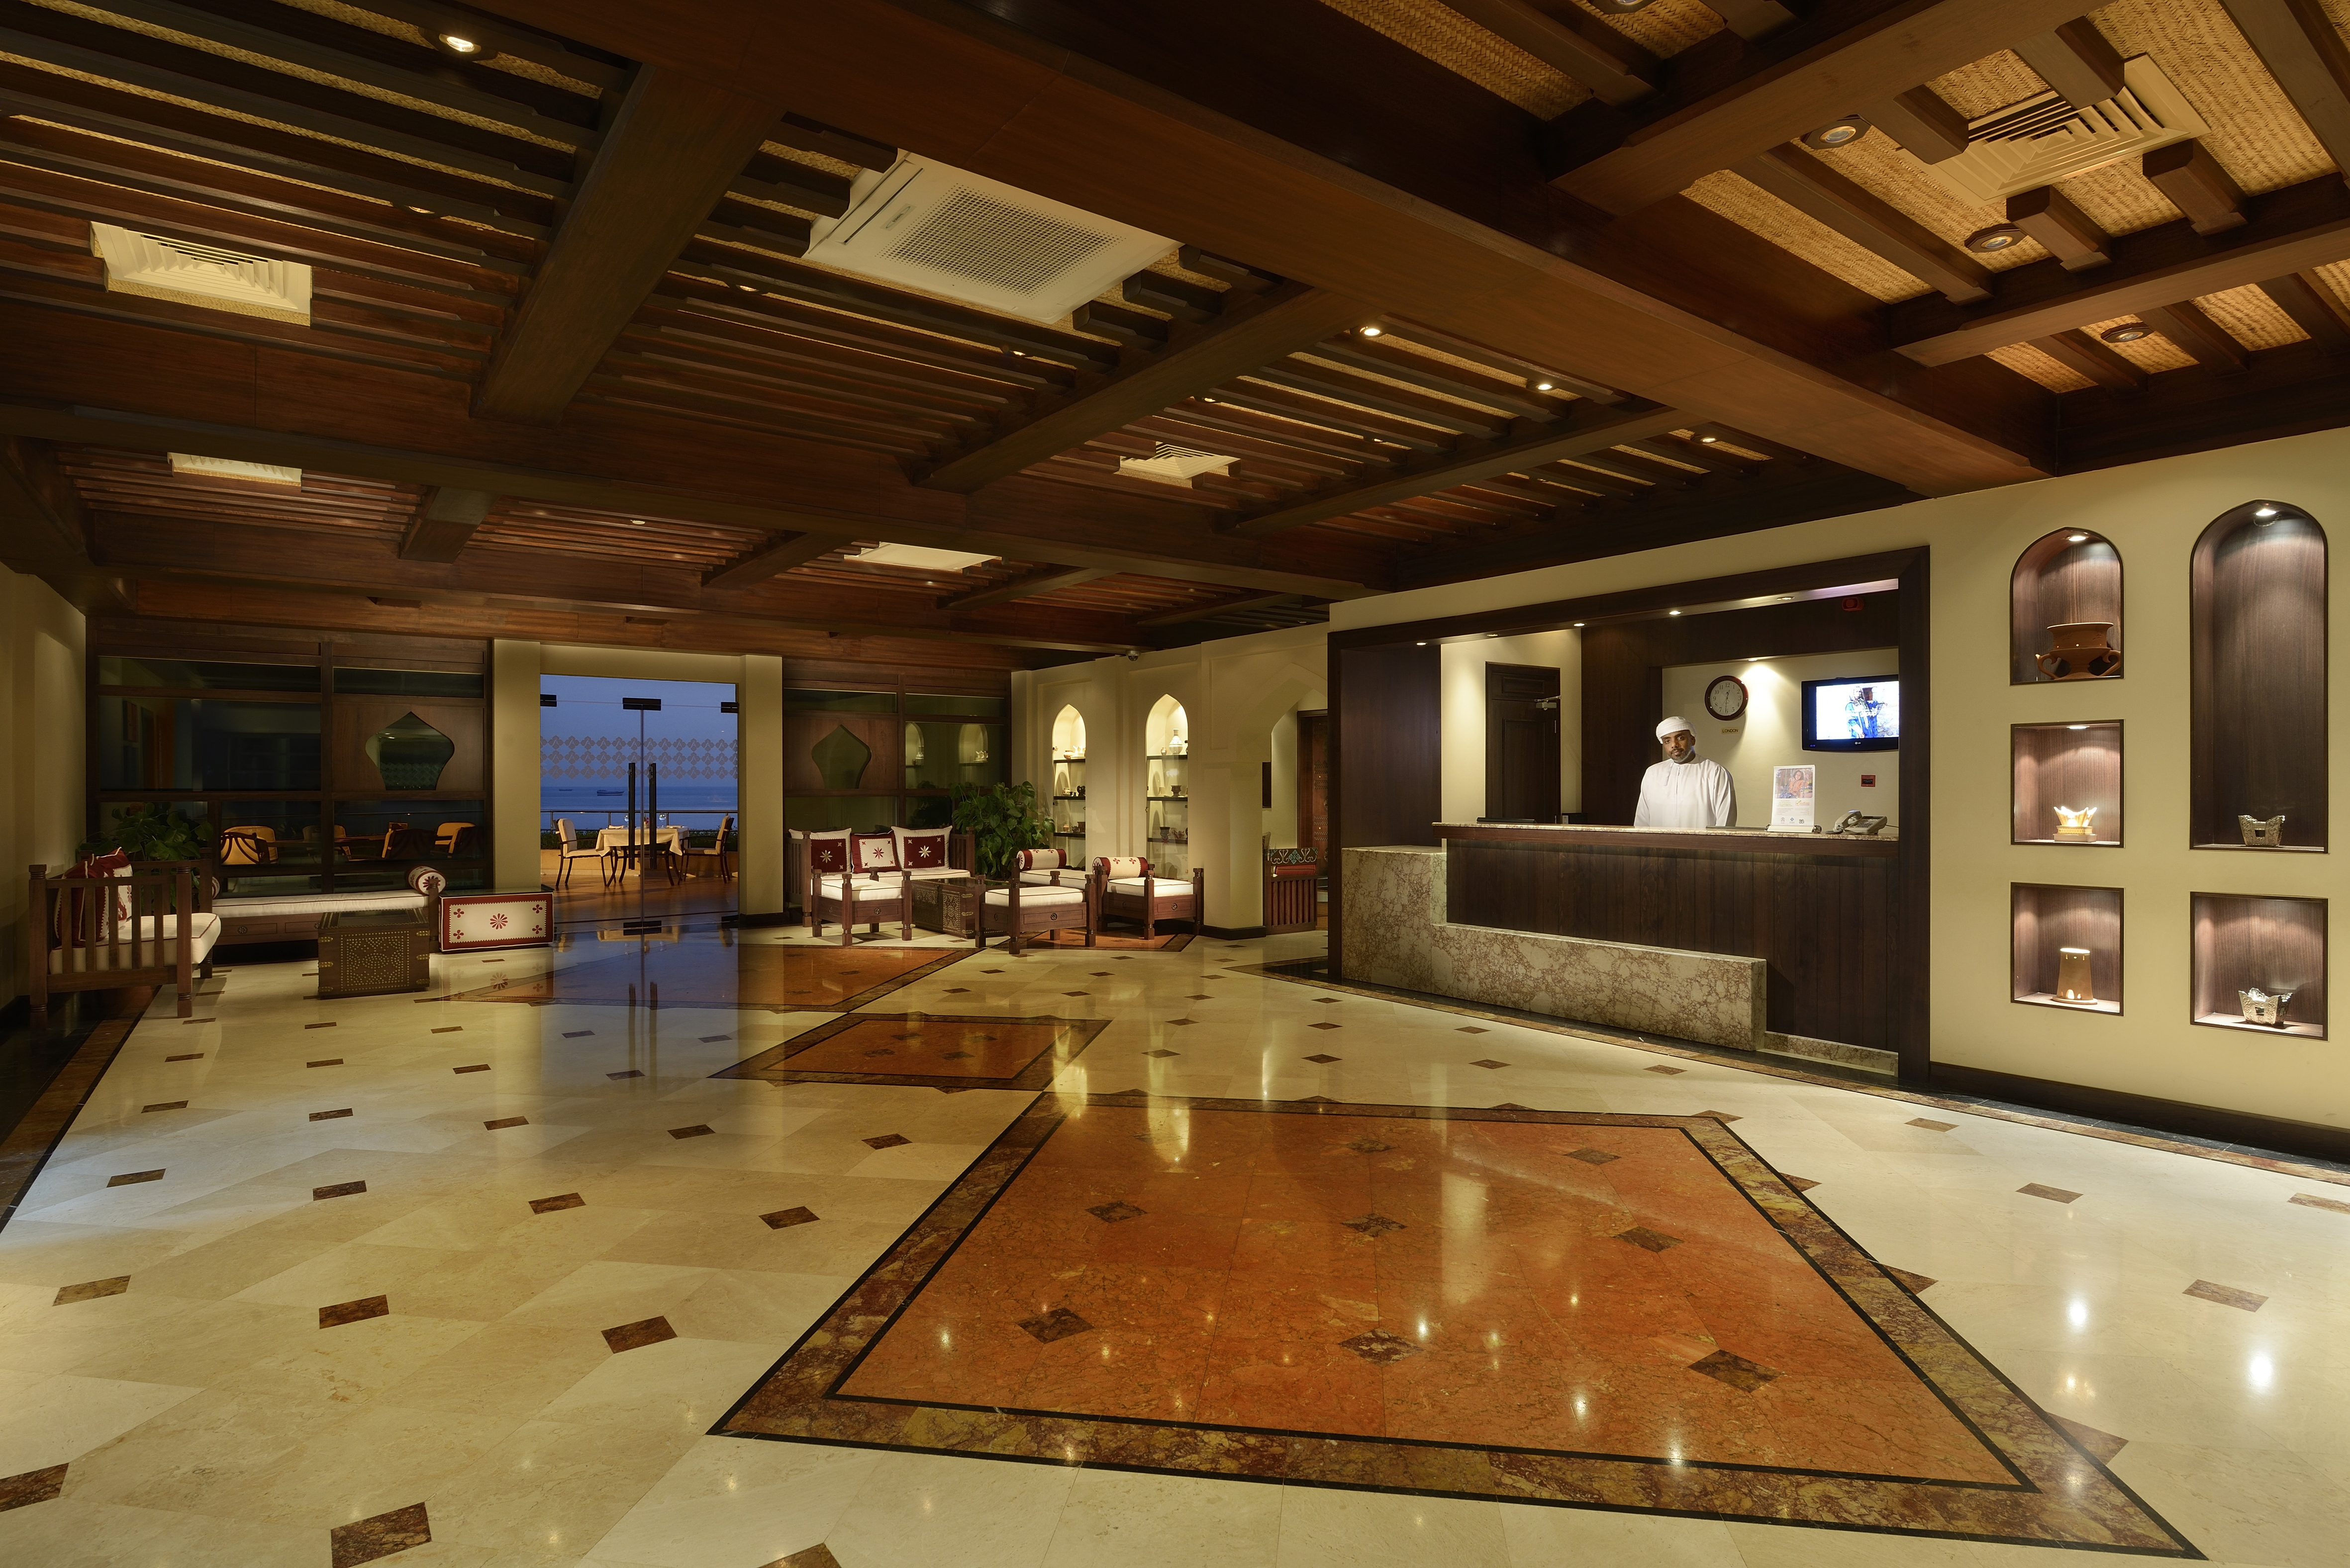 In addition to a stylish lobby, the Atana Khasab boasts a PADI dive center for those hoping to explore the waters.